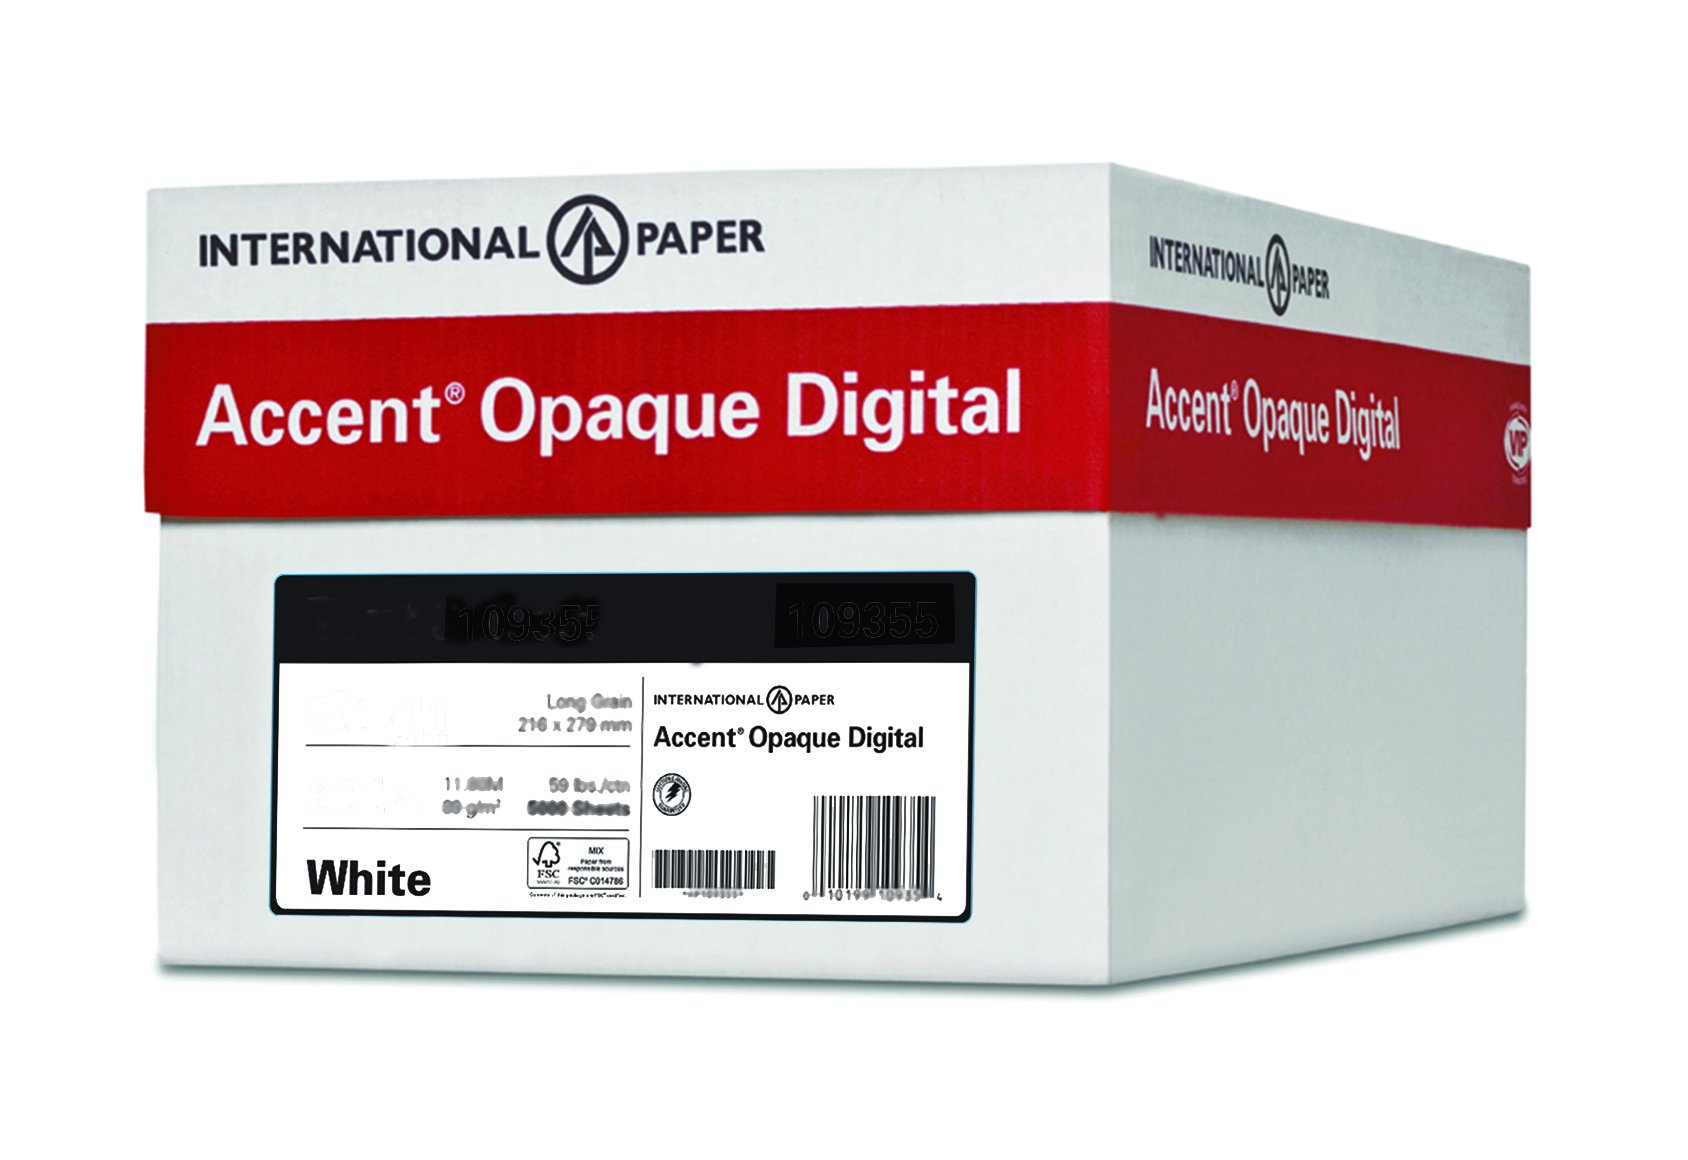 Accent Opaque, Super Smooth Cover White, 65lb, Letter, 8.5 x 11, 97 Bright, 2,500 Sheets / 10 Ream Case, Made in The USA